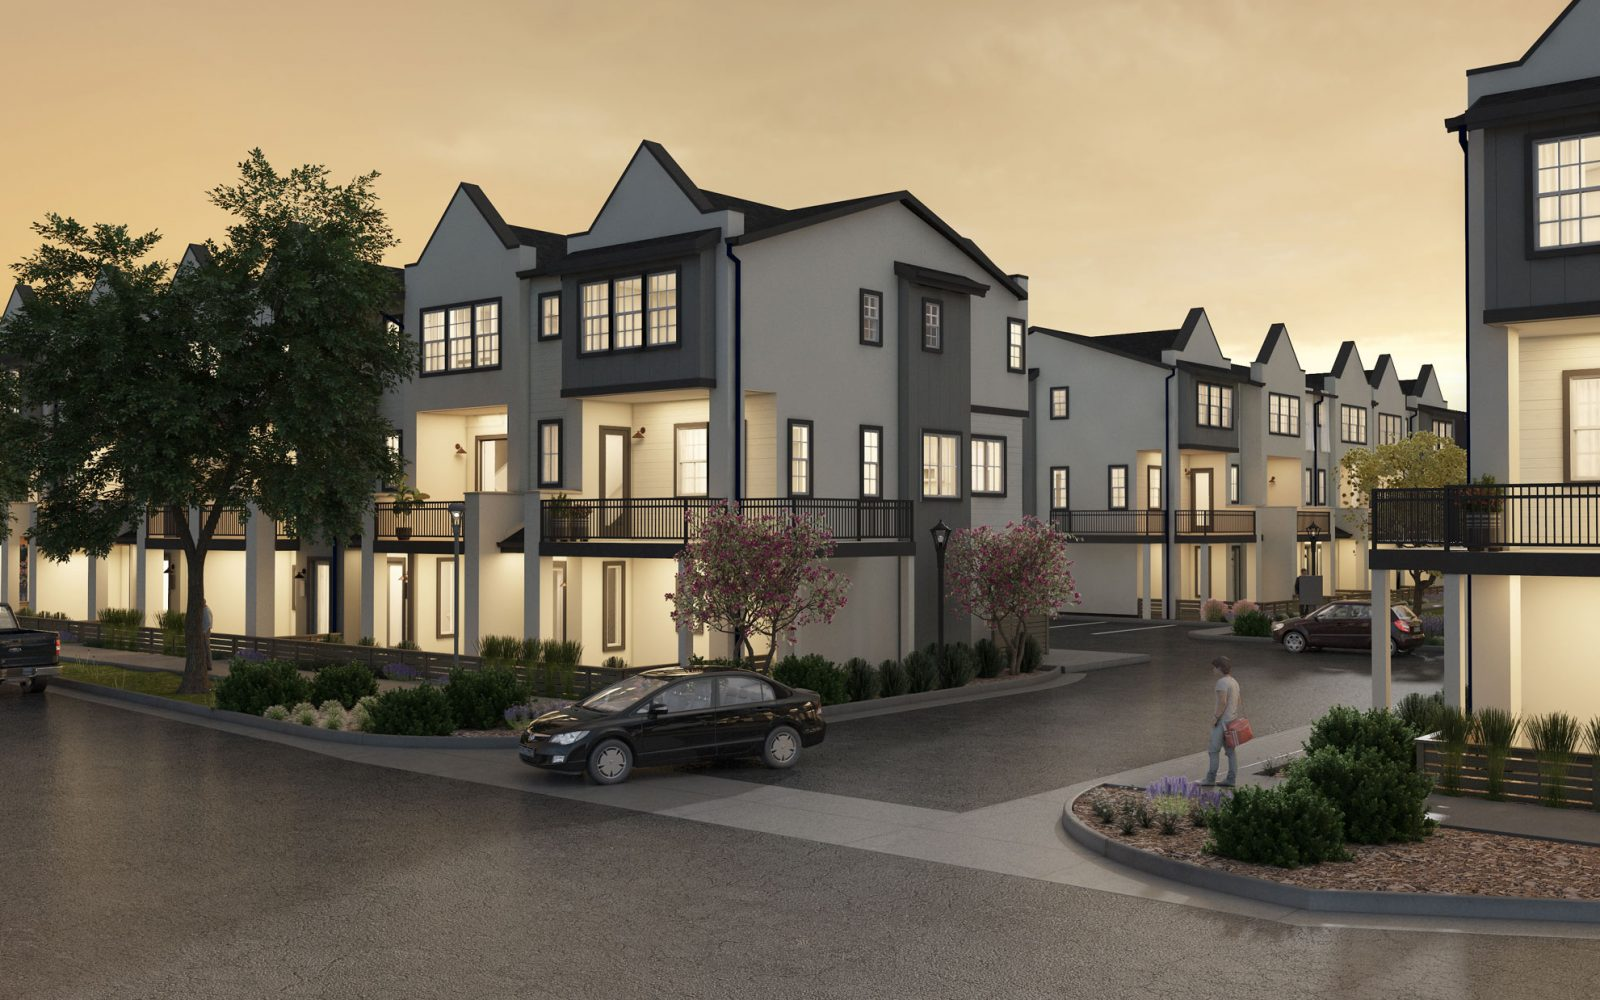 Arista 3-Story Rows: Parking Entry